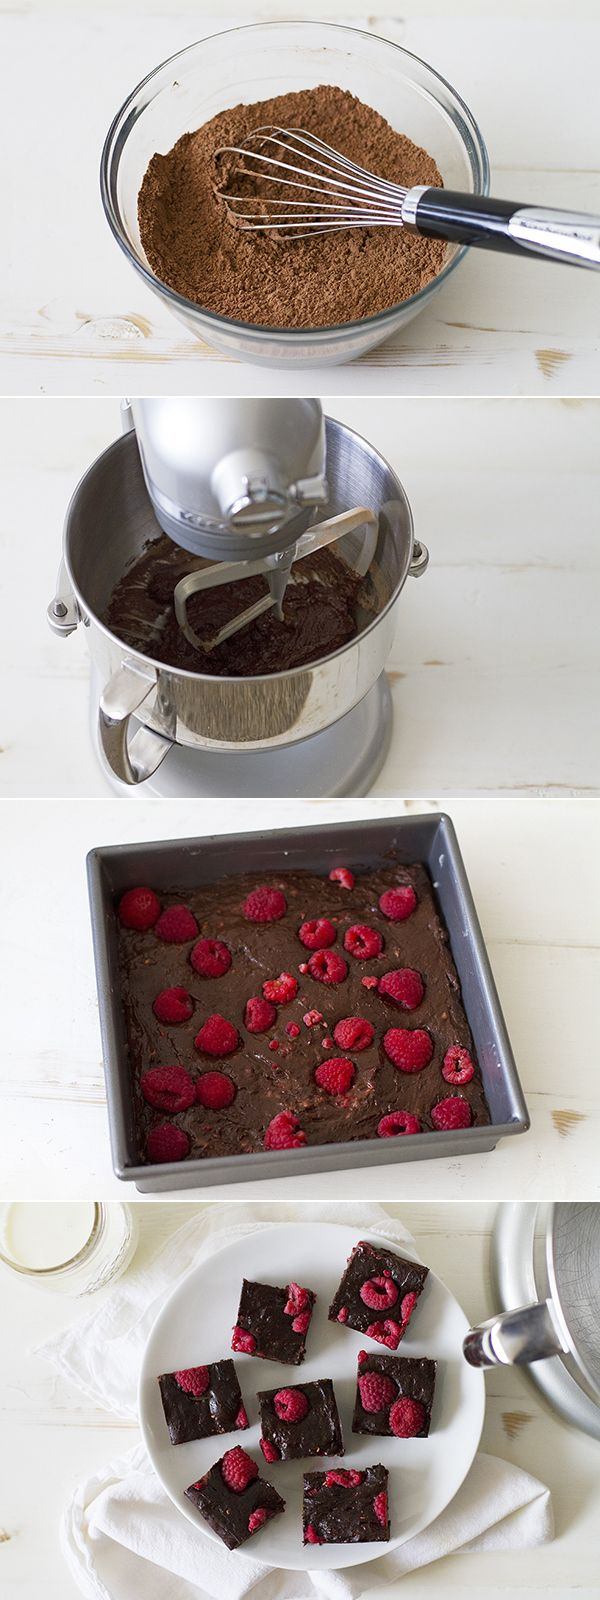 Brighten up the holidays by serving these Fudge Raspberry Mocha Brownies, made with the KitchenAid® Pro Line® Series Stand Mixer. Find the recipe by @girlversusdough on our blog: http://kitchen.ai/qGlWDv